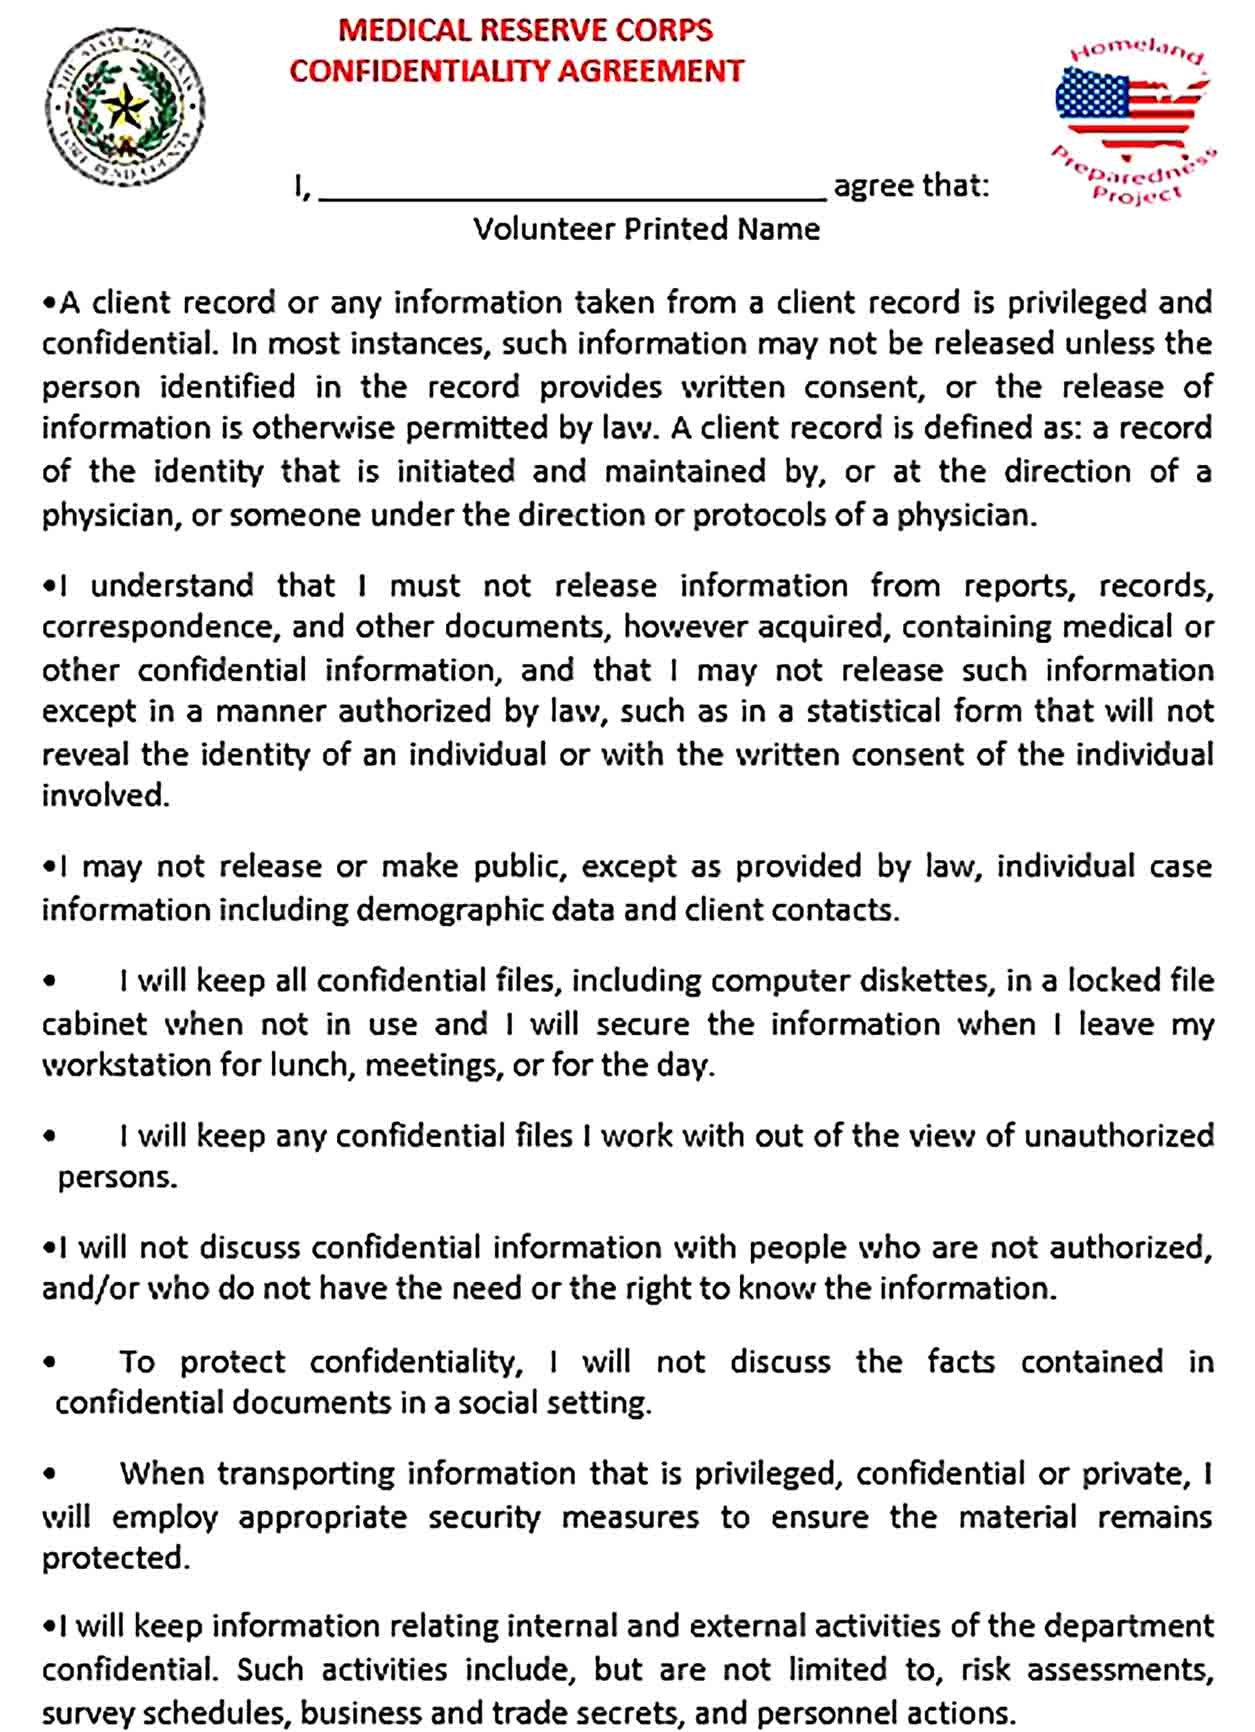 Sample Medical Confidentiality Agreement Form